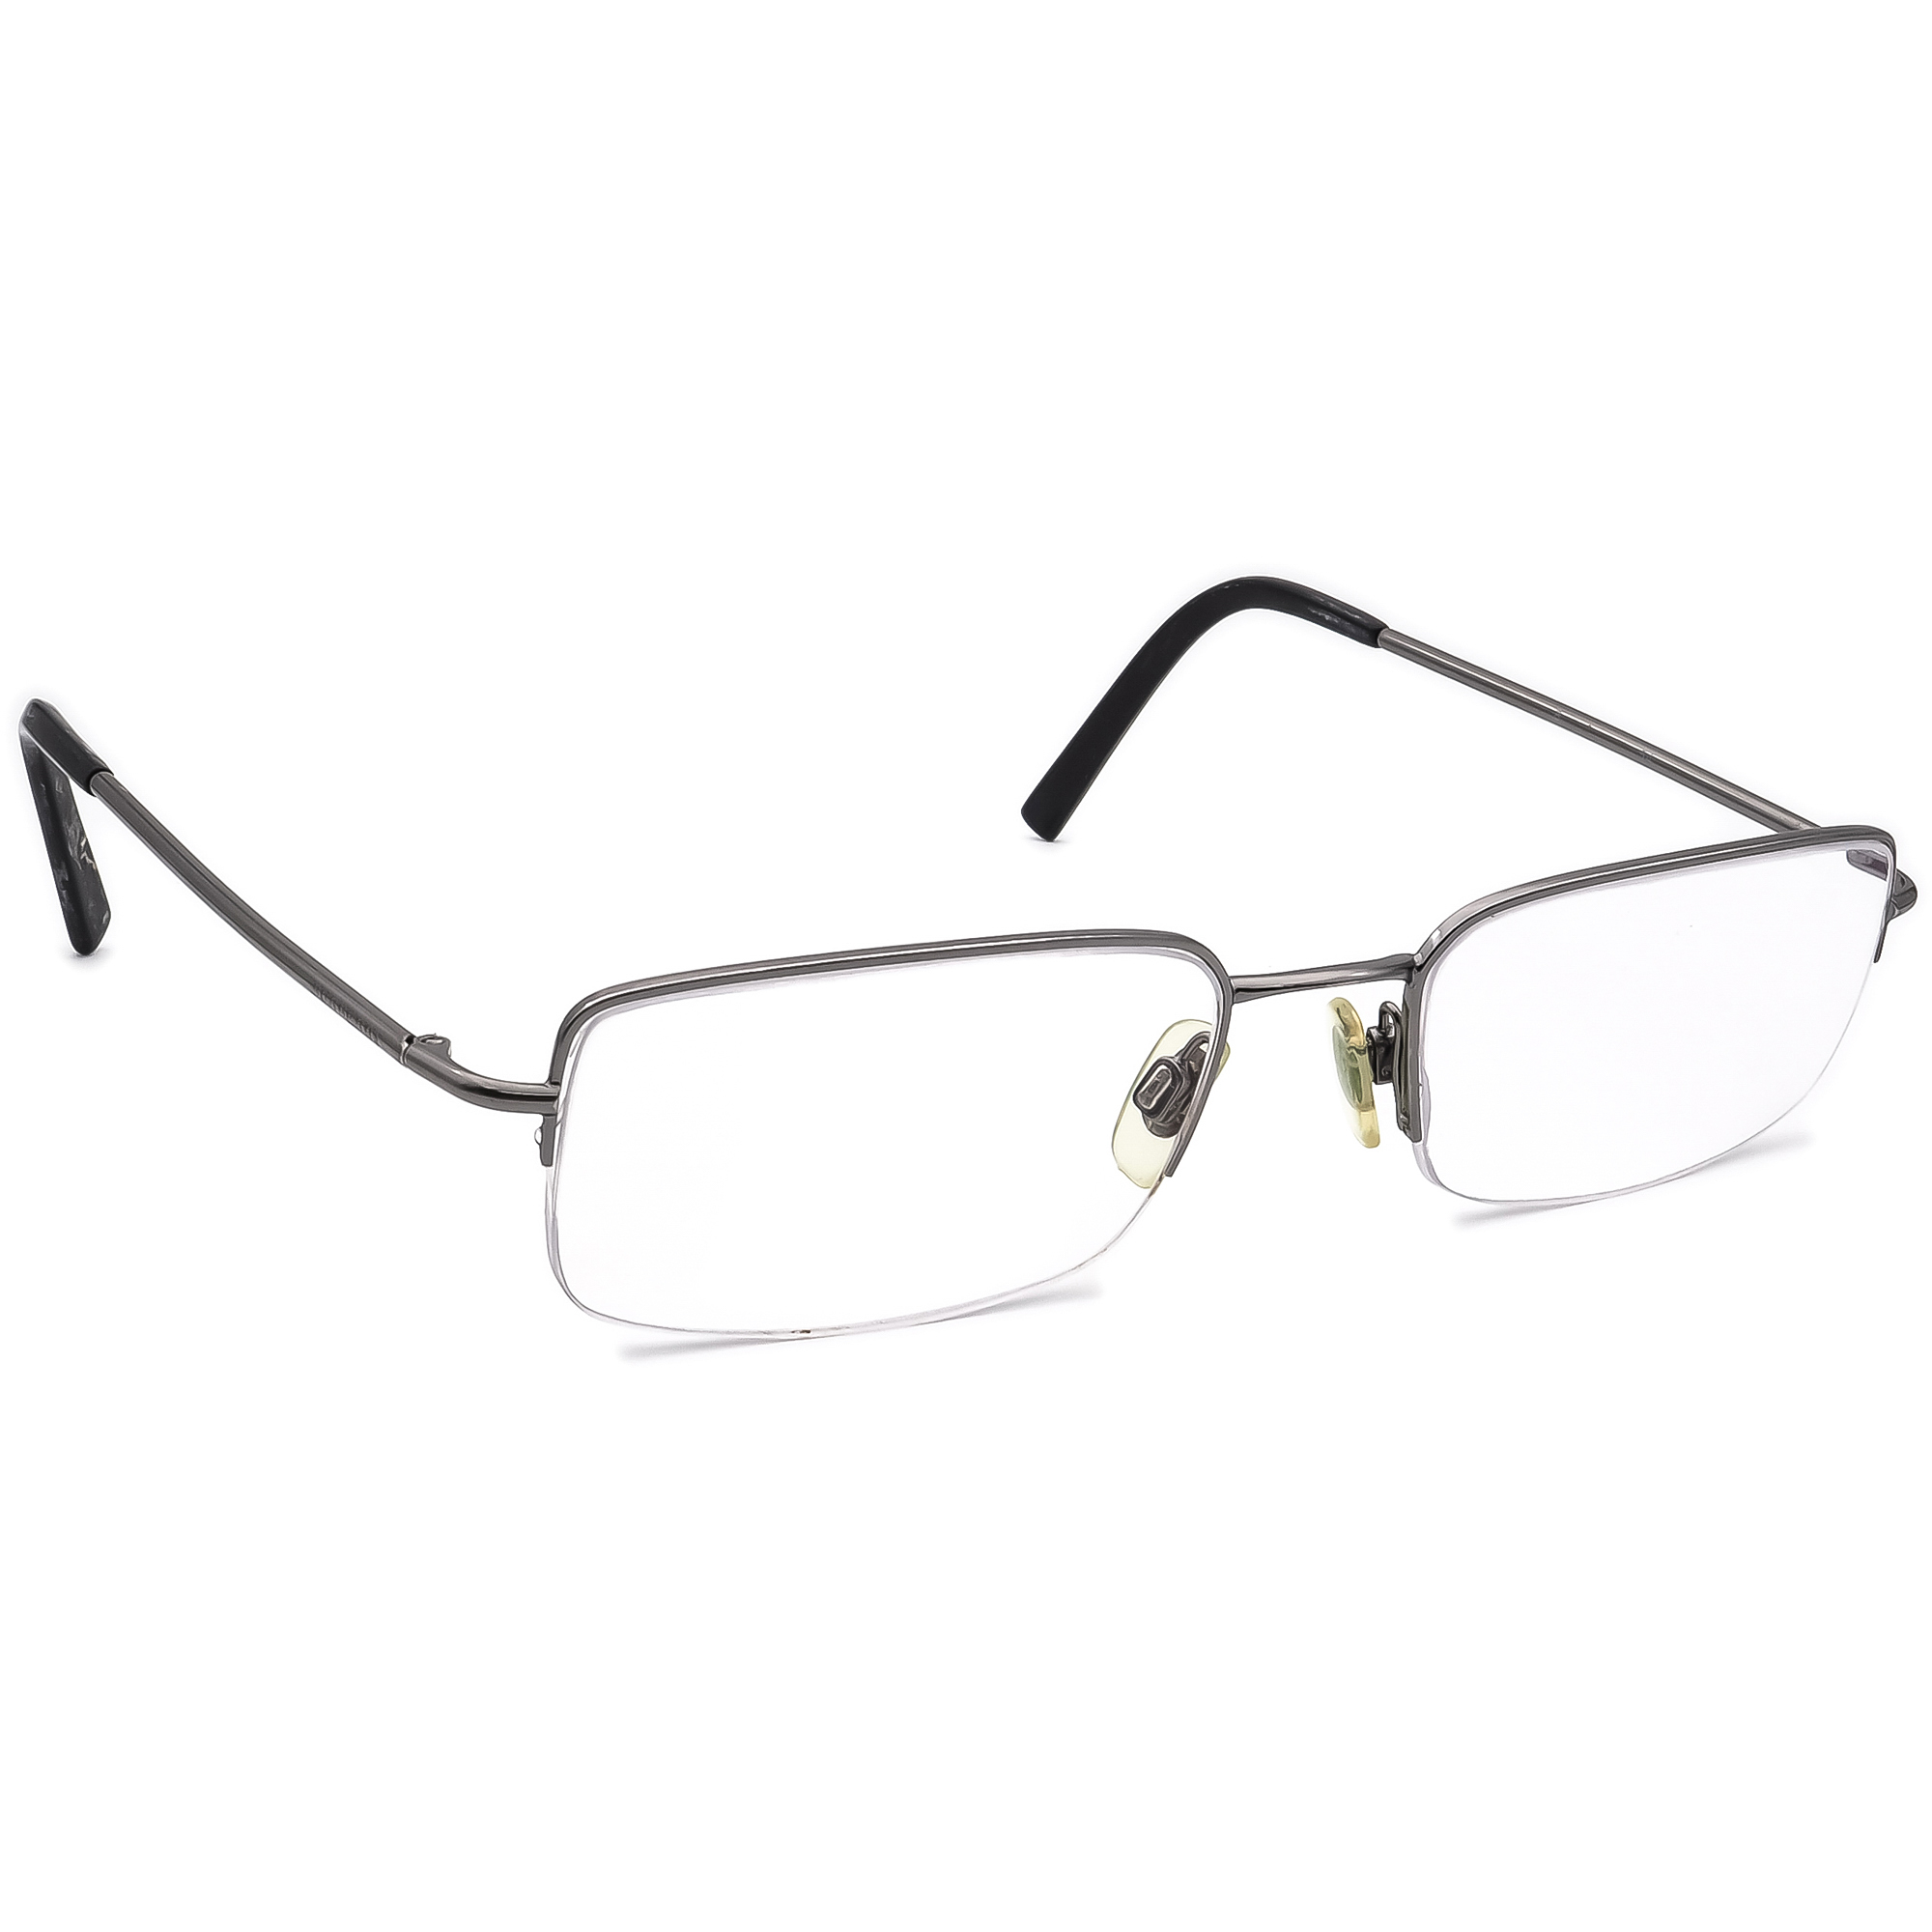 Burberry B1068 1003 Eyeglasses